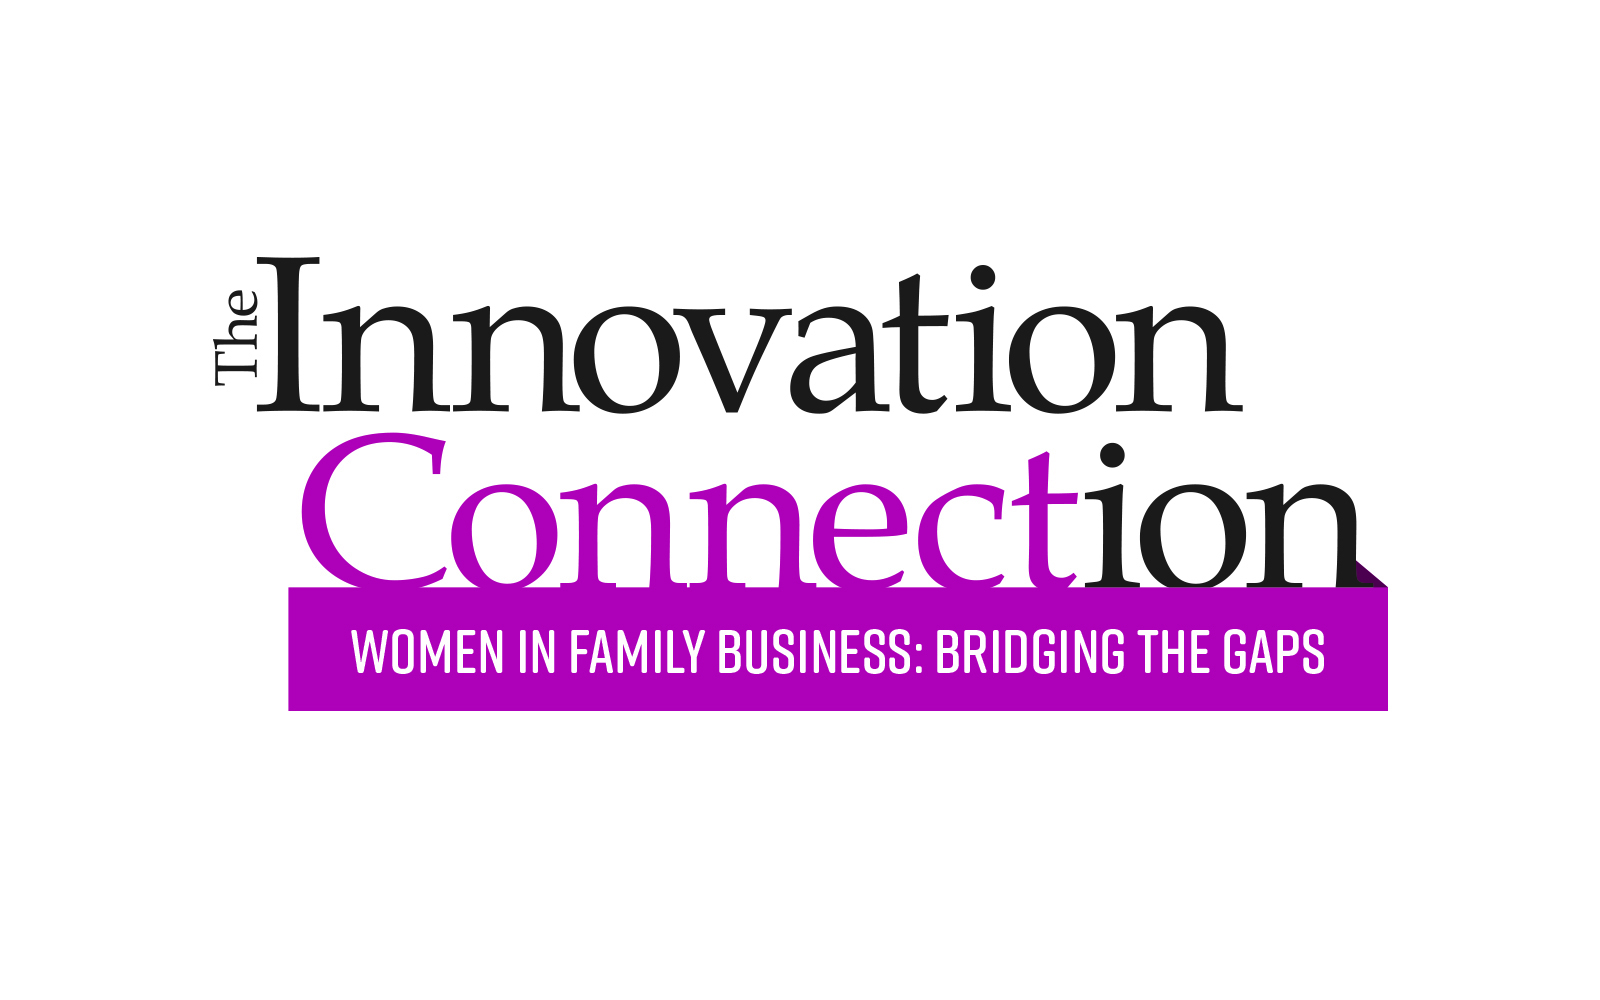 The Innovation Connection | Women in Family Business: Bridging the Gaps | February 15, 2017